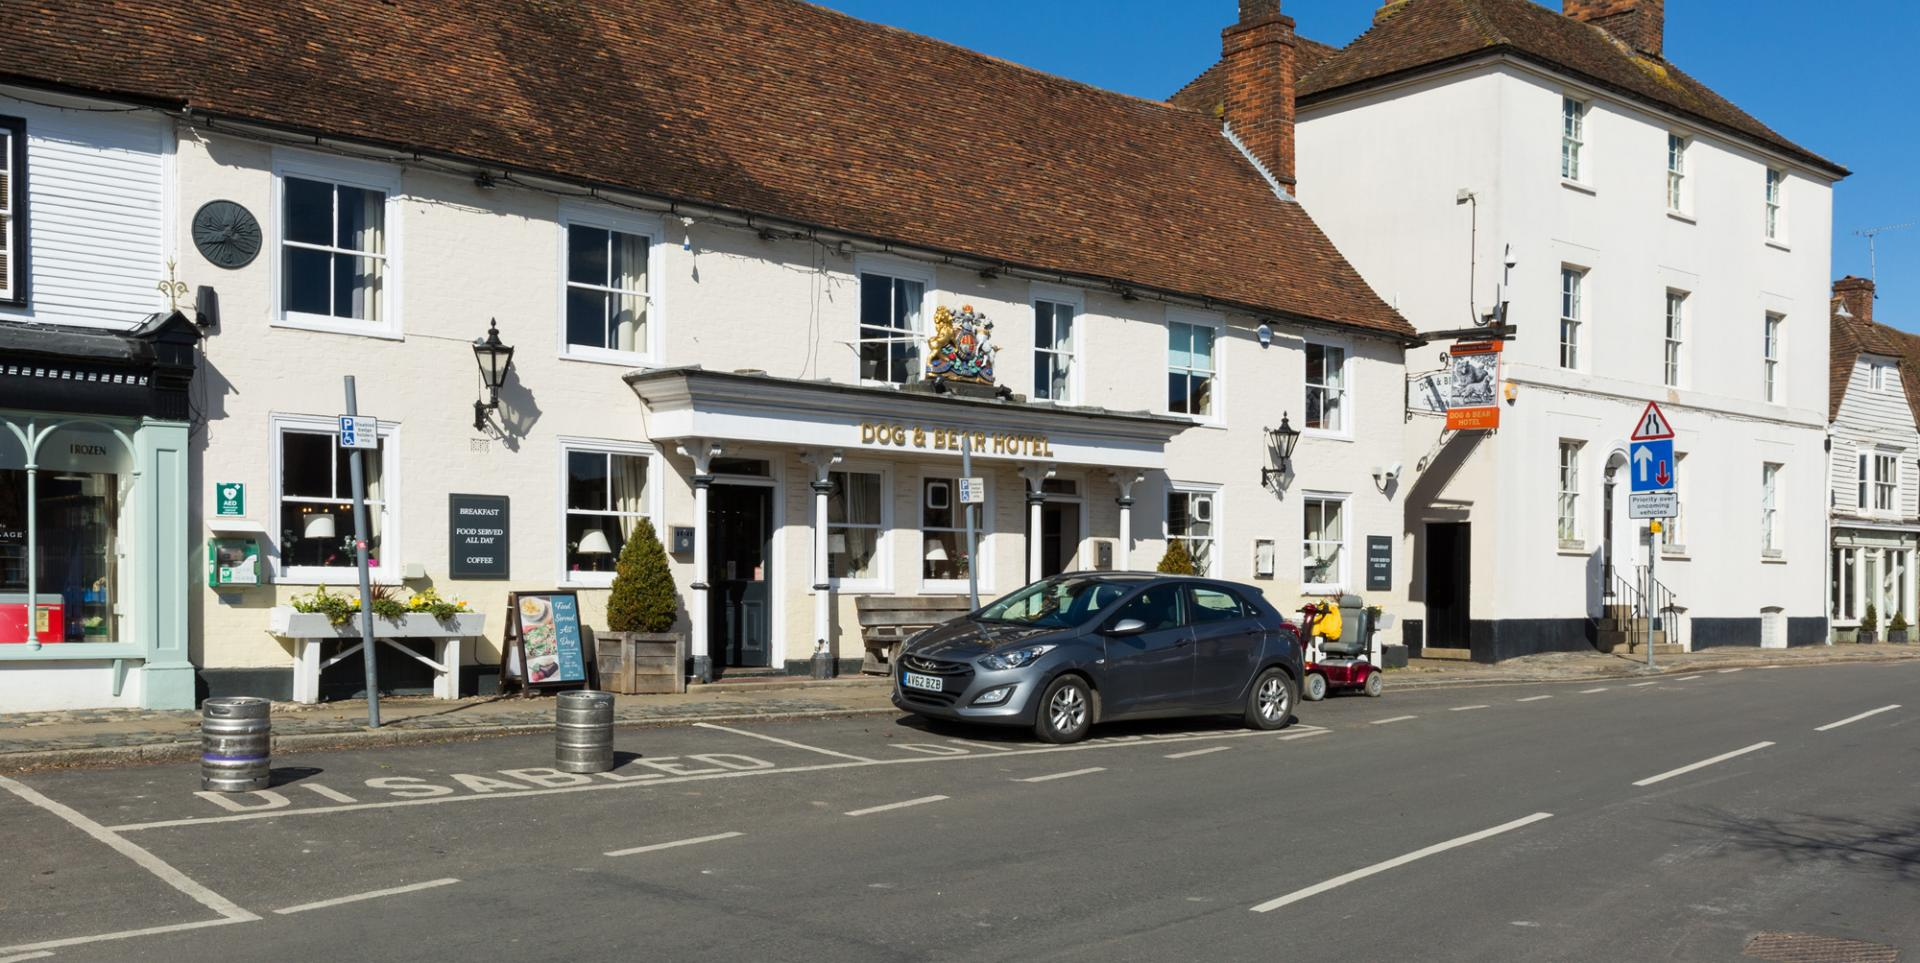 Dog & Bear - Lenham